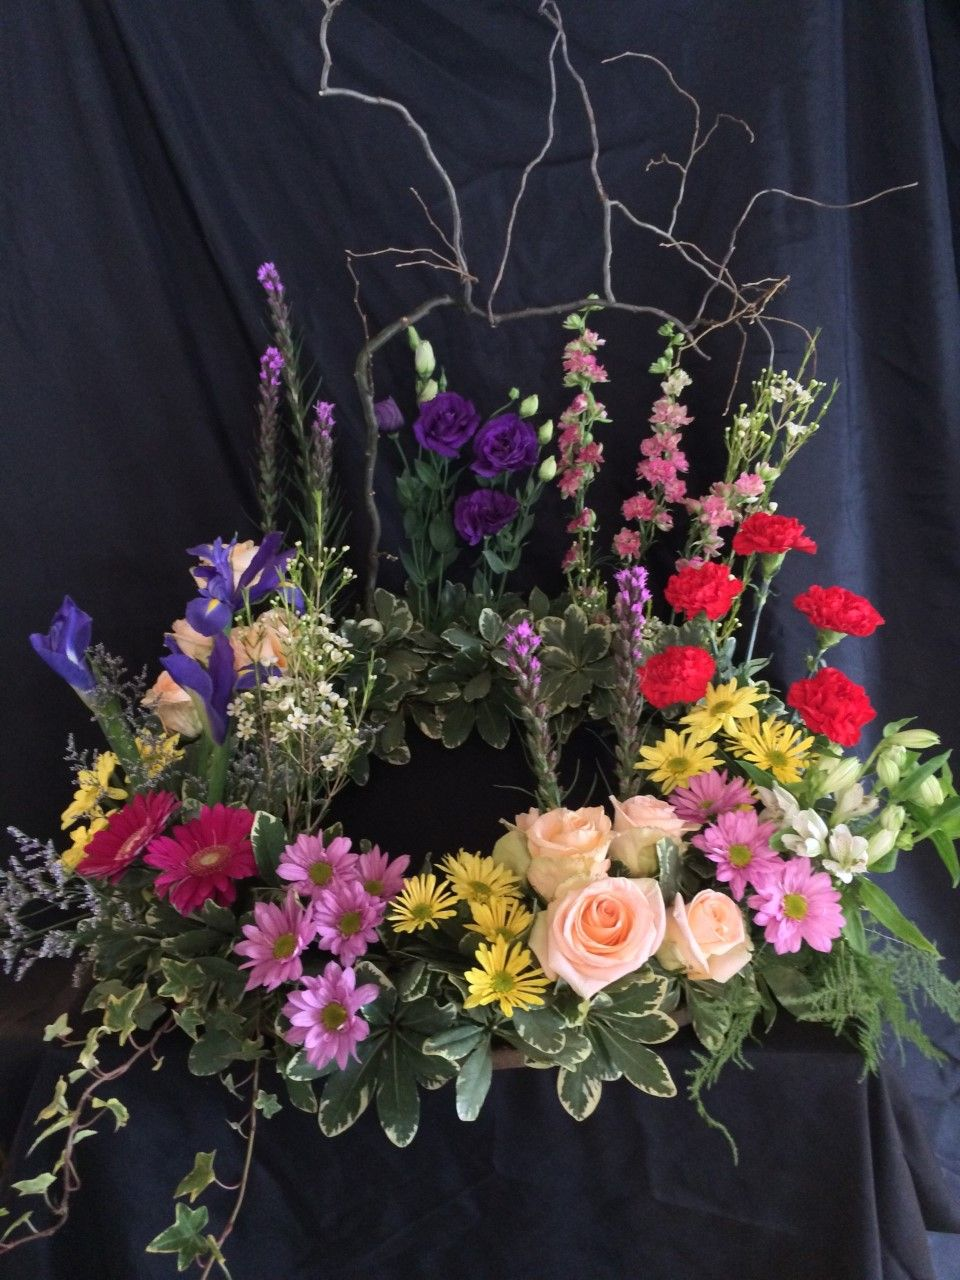 A wreath made for a funeral. The center is left open for